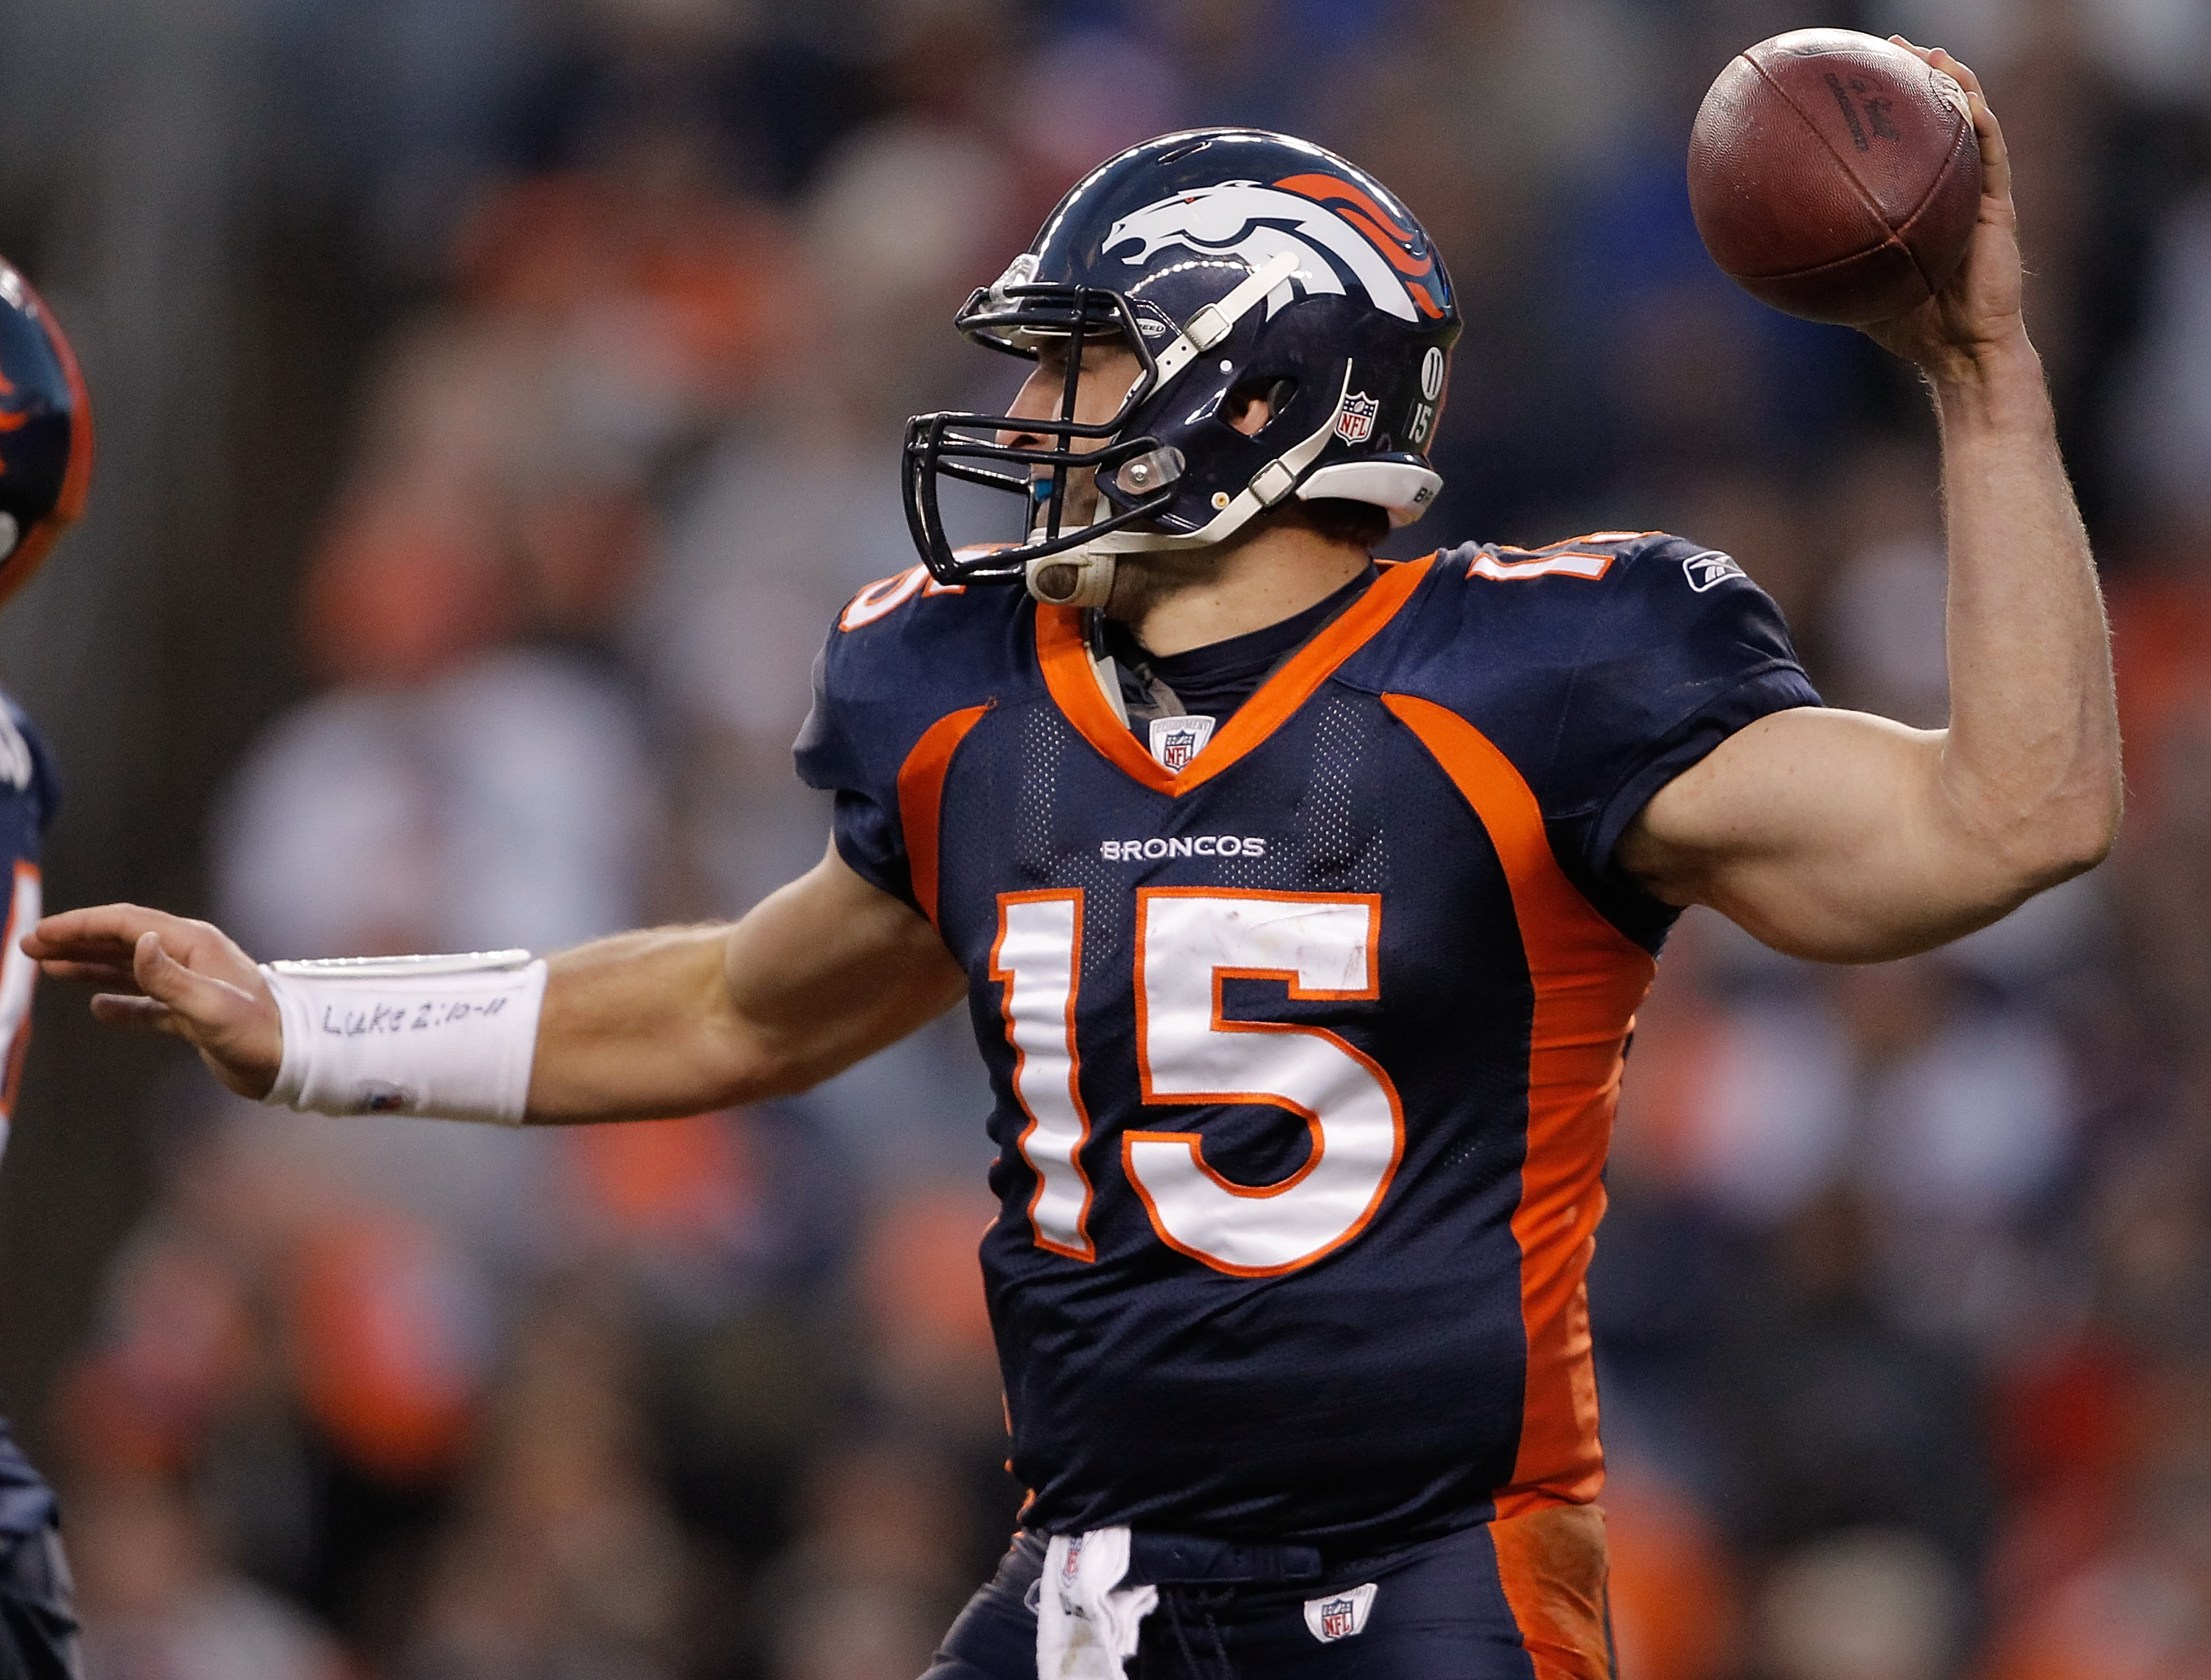 DENVER - DECEMBER 26:  Quarterback Tim Tebow #15 of the Denver Broncos throws a pass against the Houston Texans at INVESCO Field at Mile High on December 26, 2010 in Denver, Colorado.  The Denver Broncos defeated the Houston Texans 24-23. (Photo by Justin